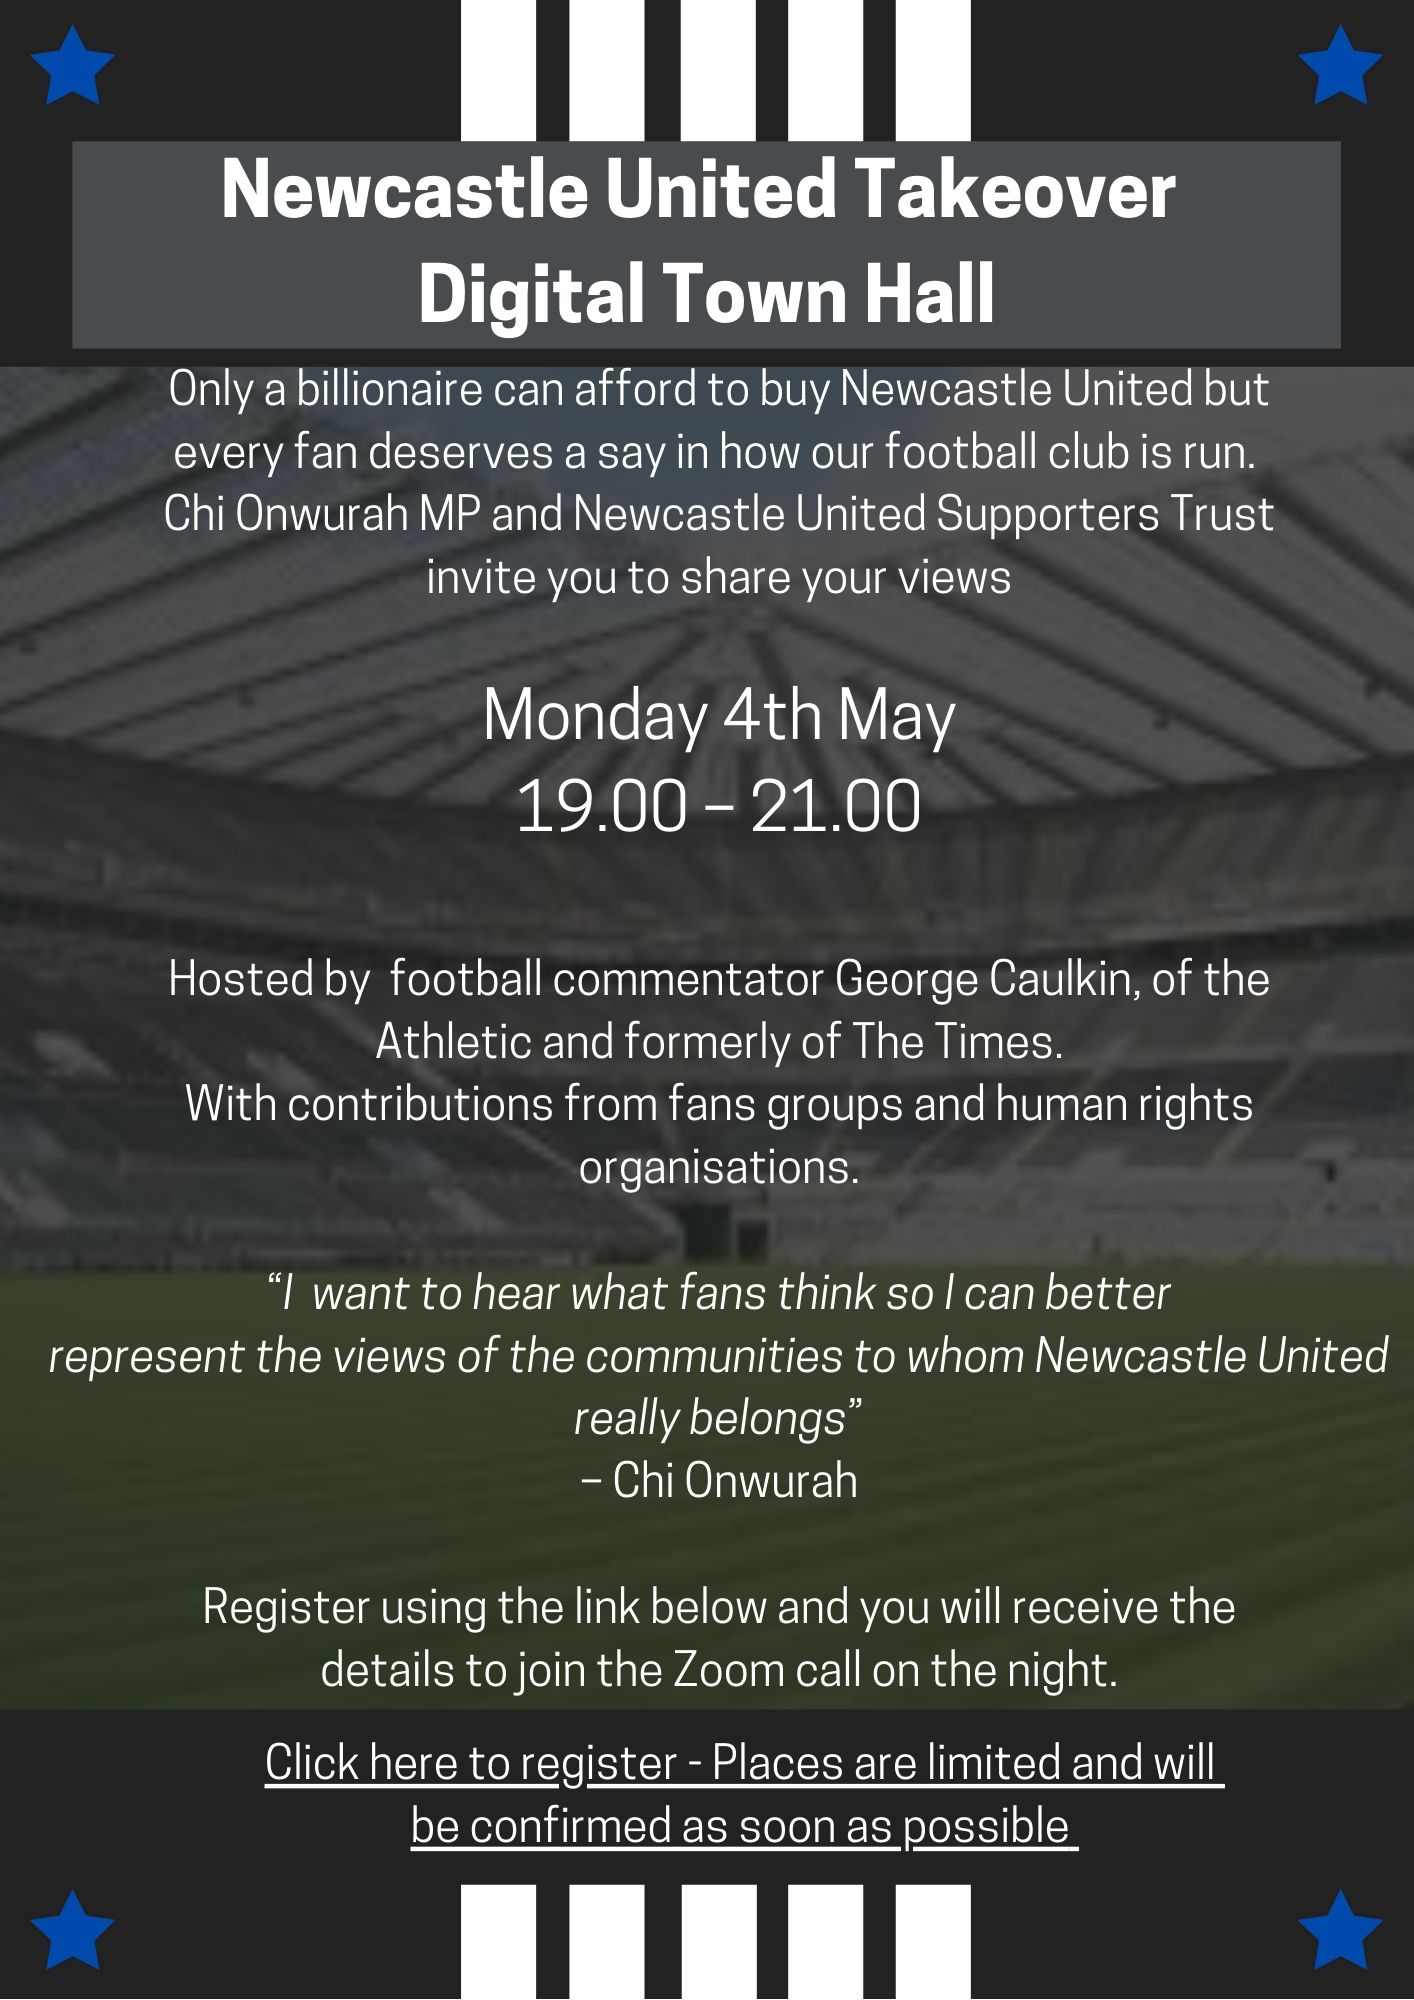 Newcastle United Takeover – Digital Town Hall